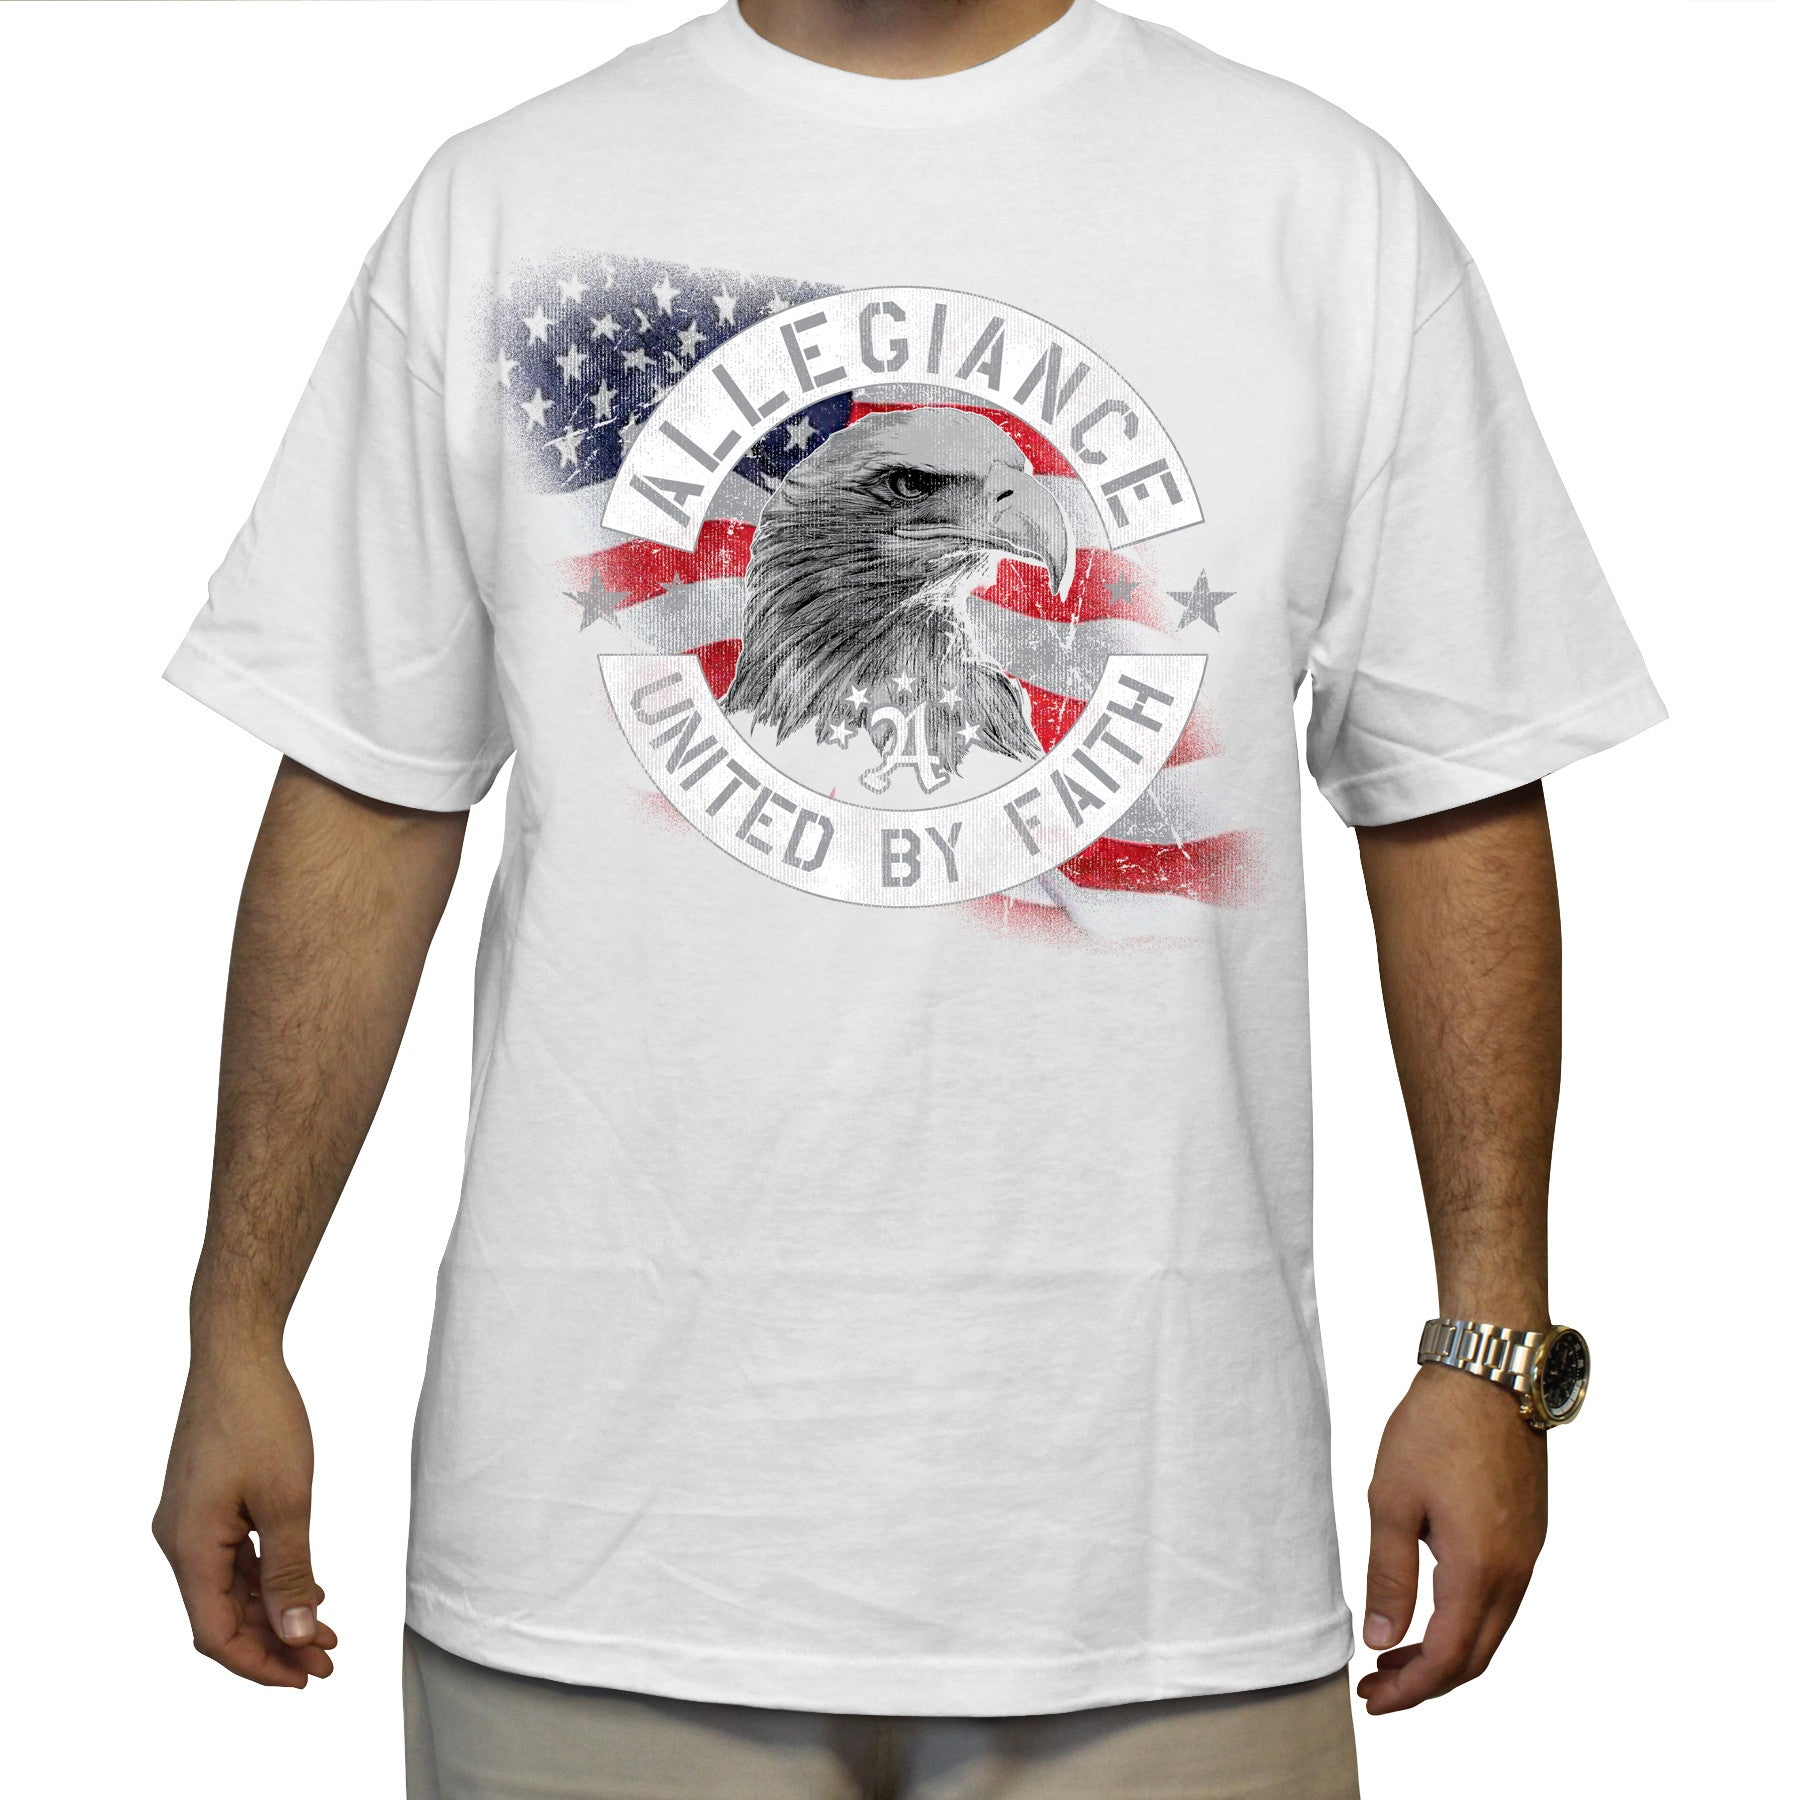 Allegiance Clothing. The Allegiance Eagle Tee. Allegiance Eagle Tee  art print screened on front. Available in black and white. Crew neck. 100% cotton. Machine wash. Made in USA.